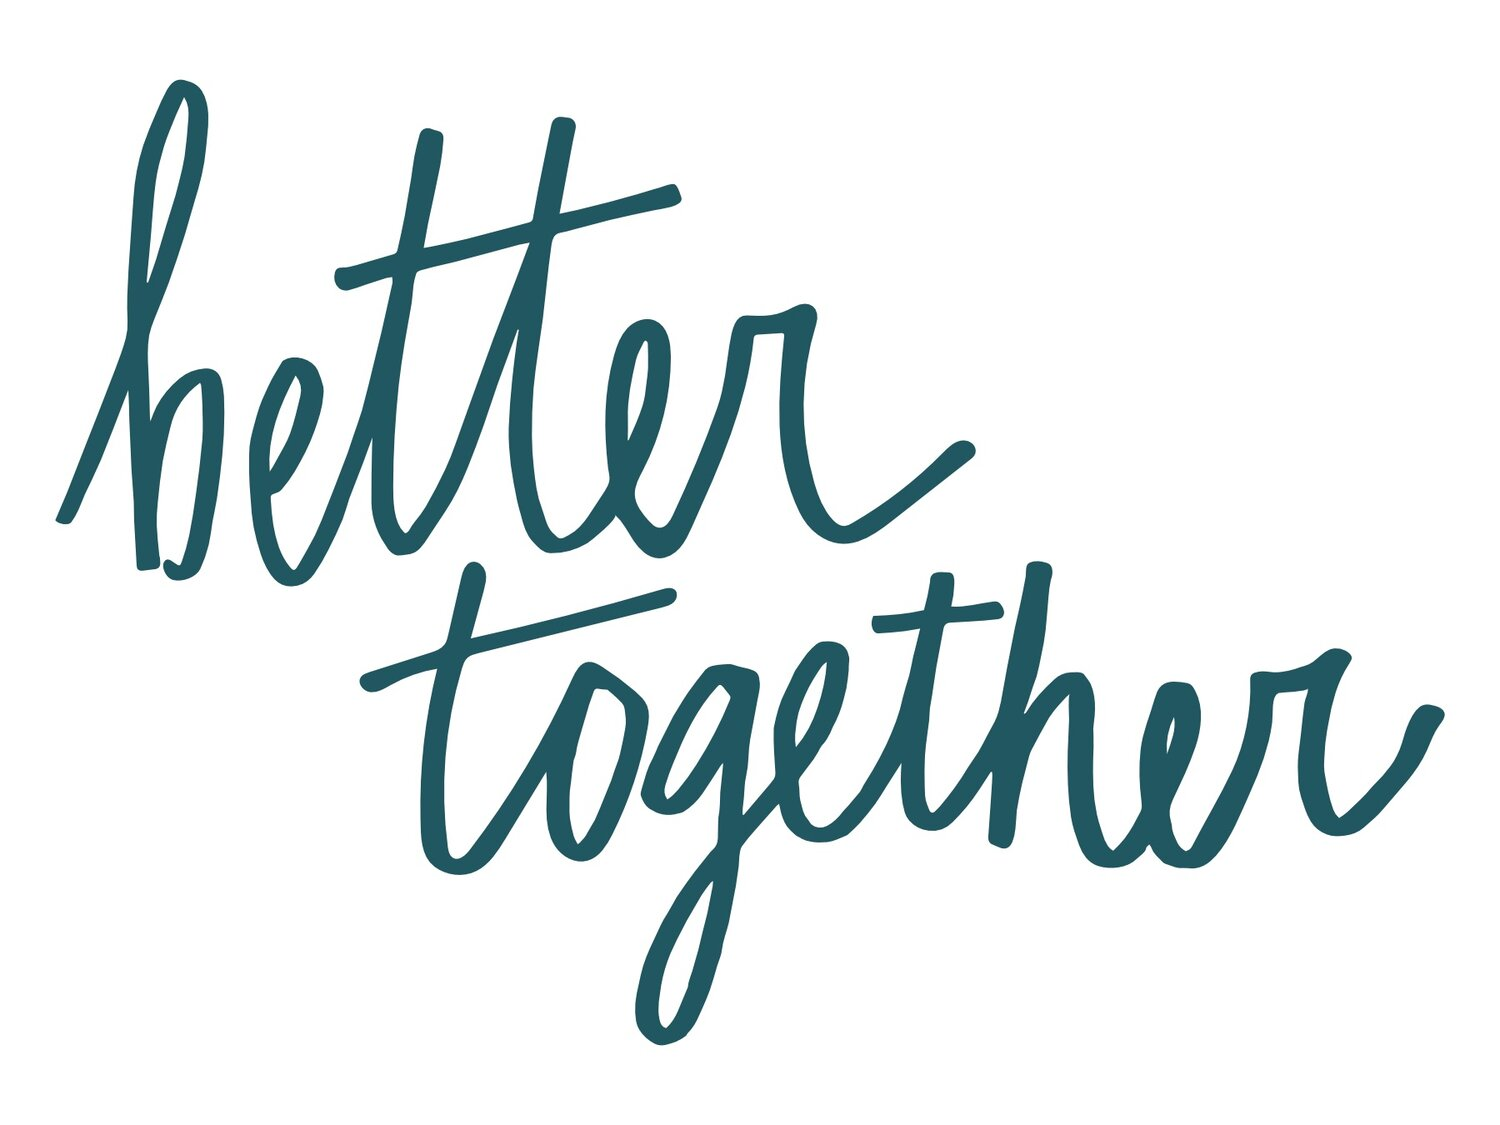 Better Together of Walla Walla